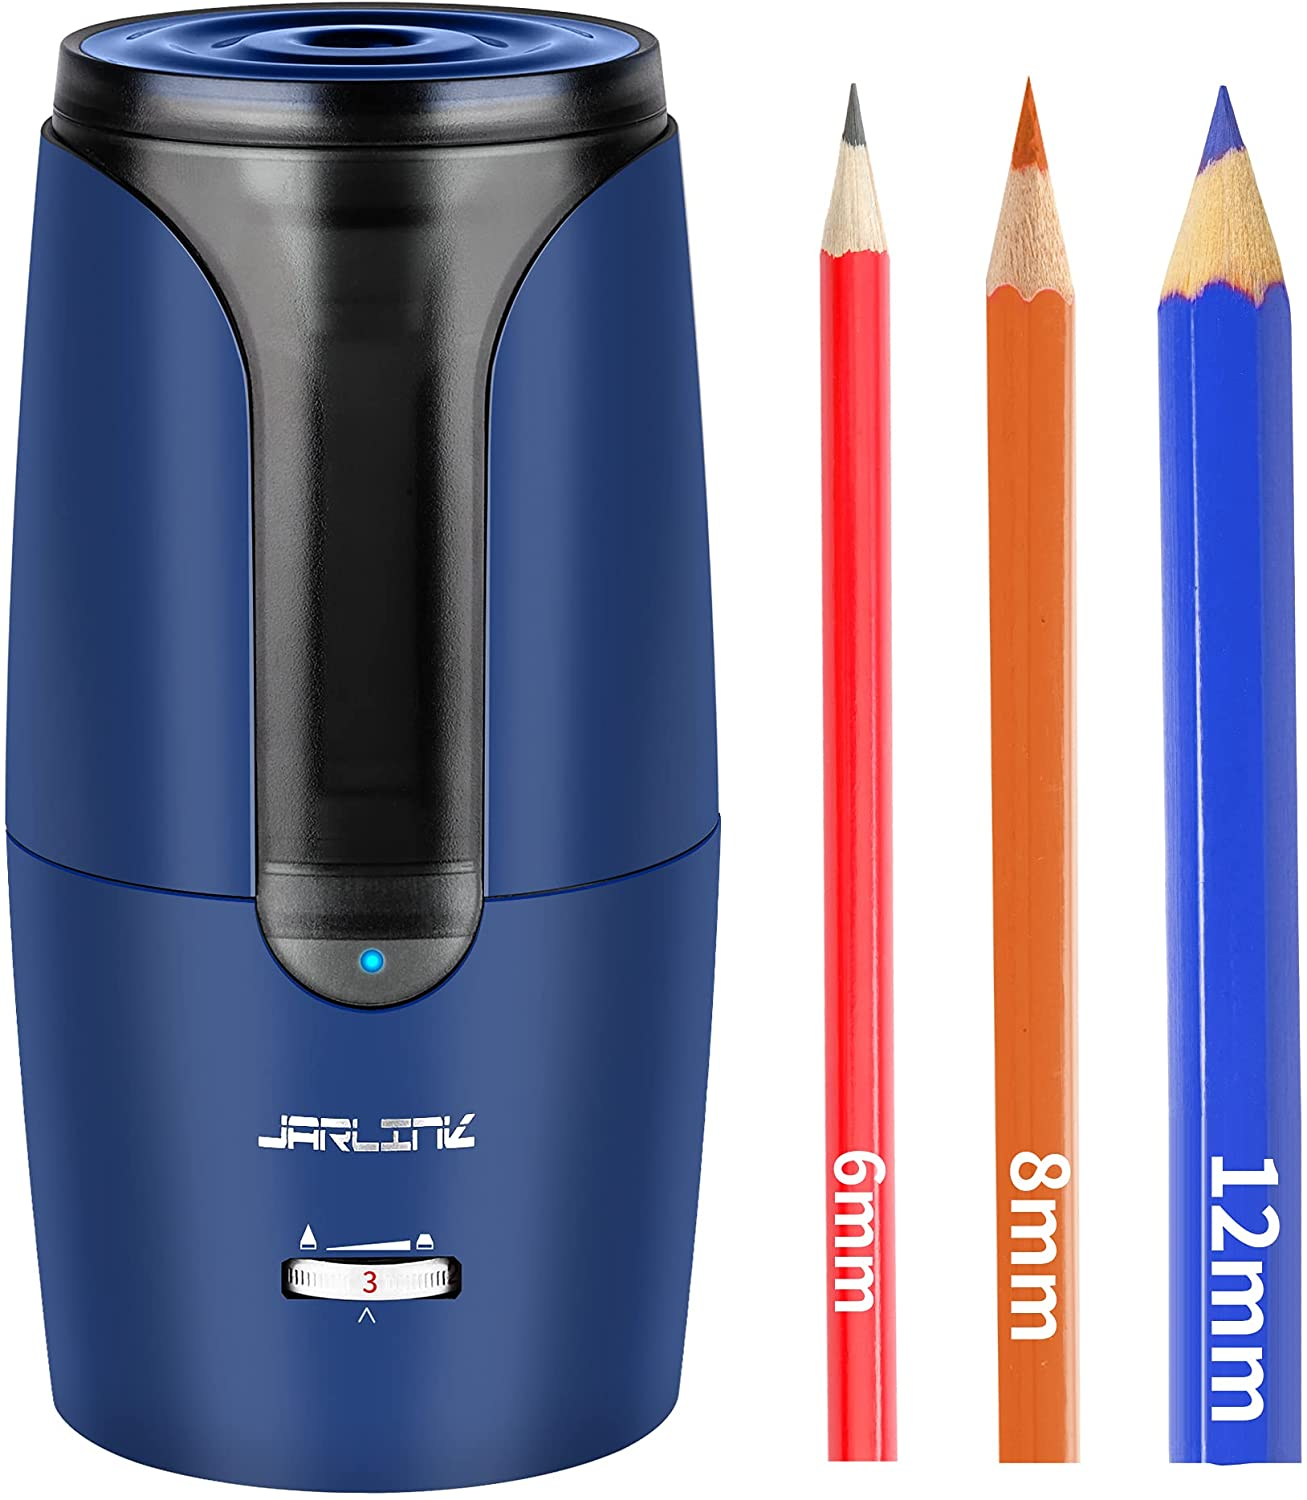 JARLINK Electric Pencil Sharpener Long-awaited New product La Rechargeable Auto-Stop and